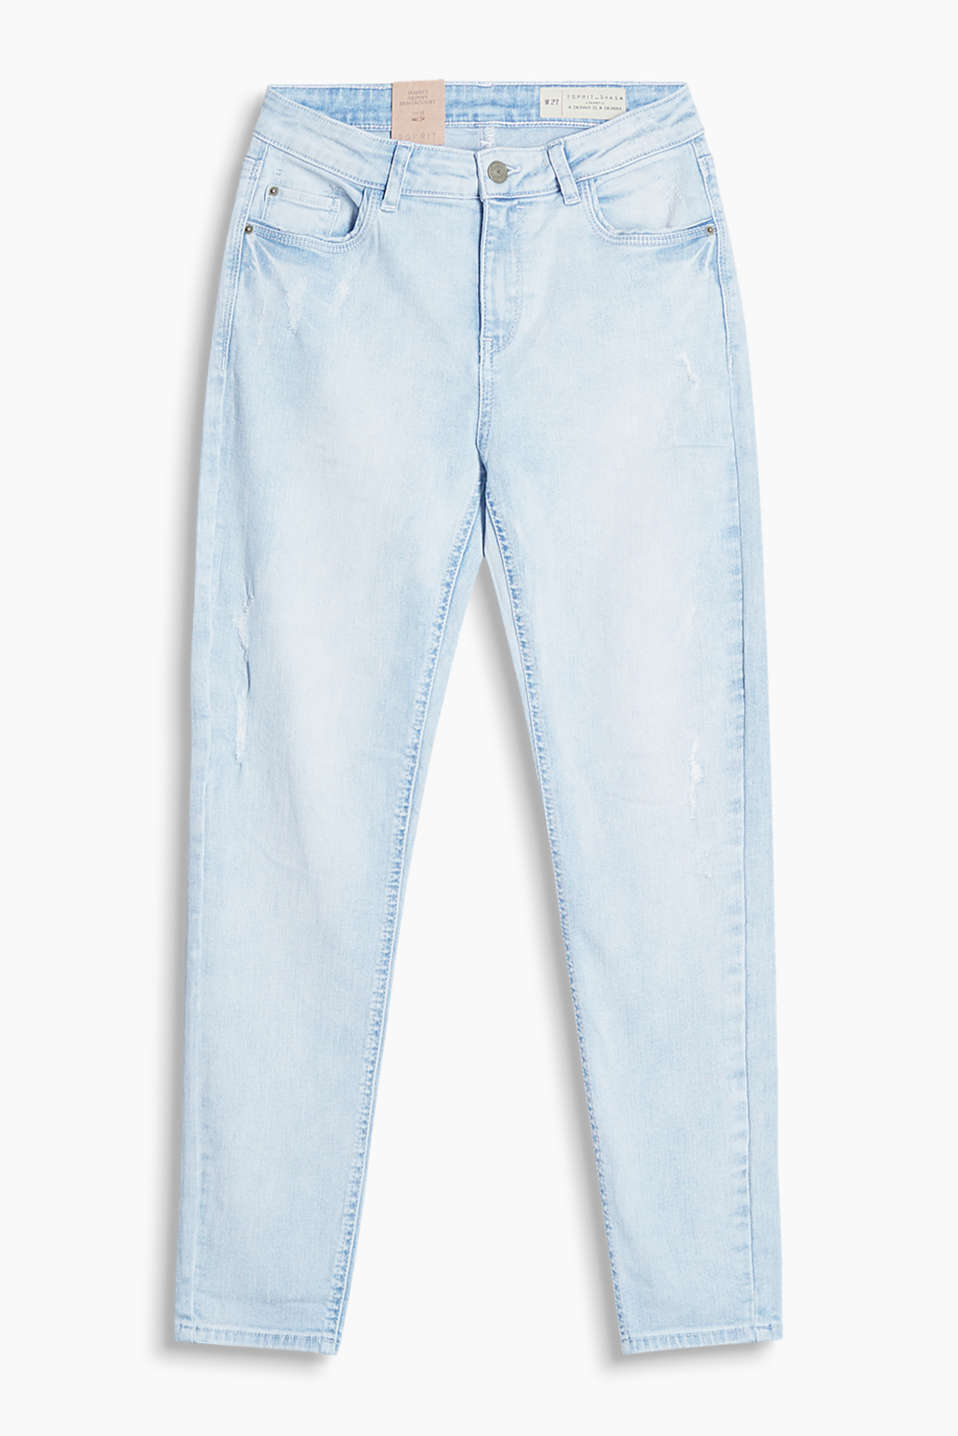 Sommerliche bleached Stretch-Denim im Used-Look